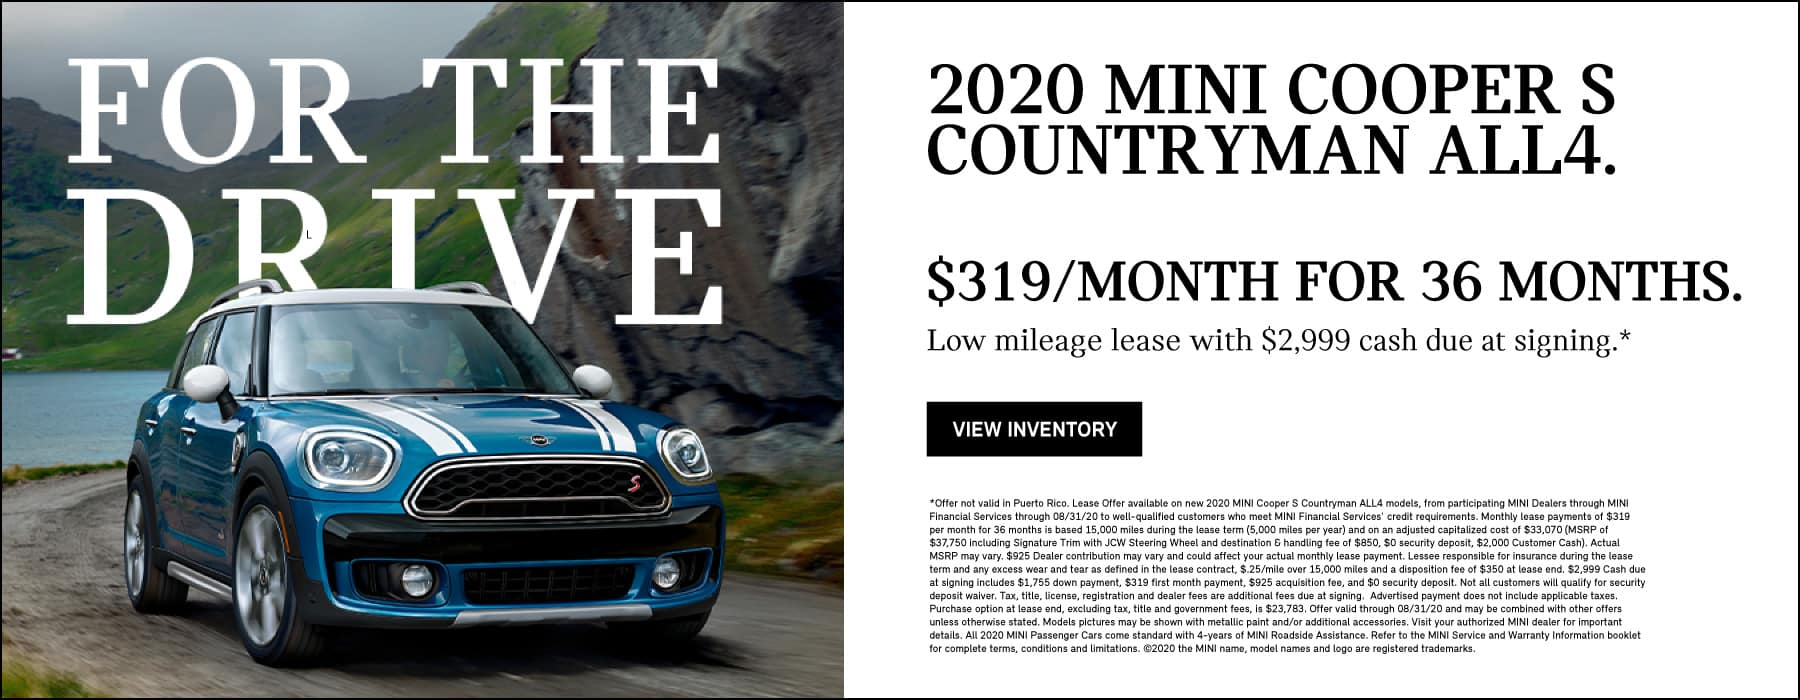 2020 MINI Cooper S Countryman ALL4: $319 low mileage monthly lease for 36 months, $2,999 due at signing.